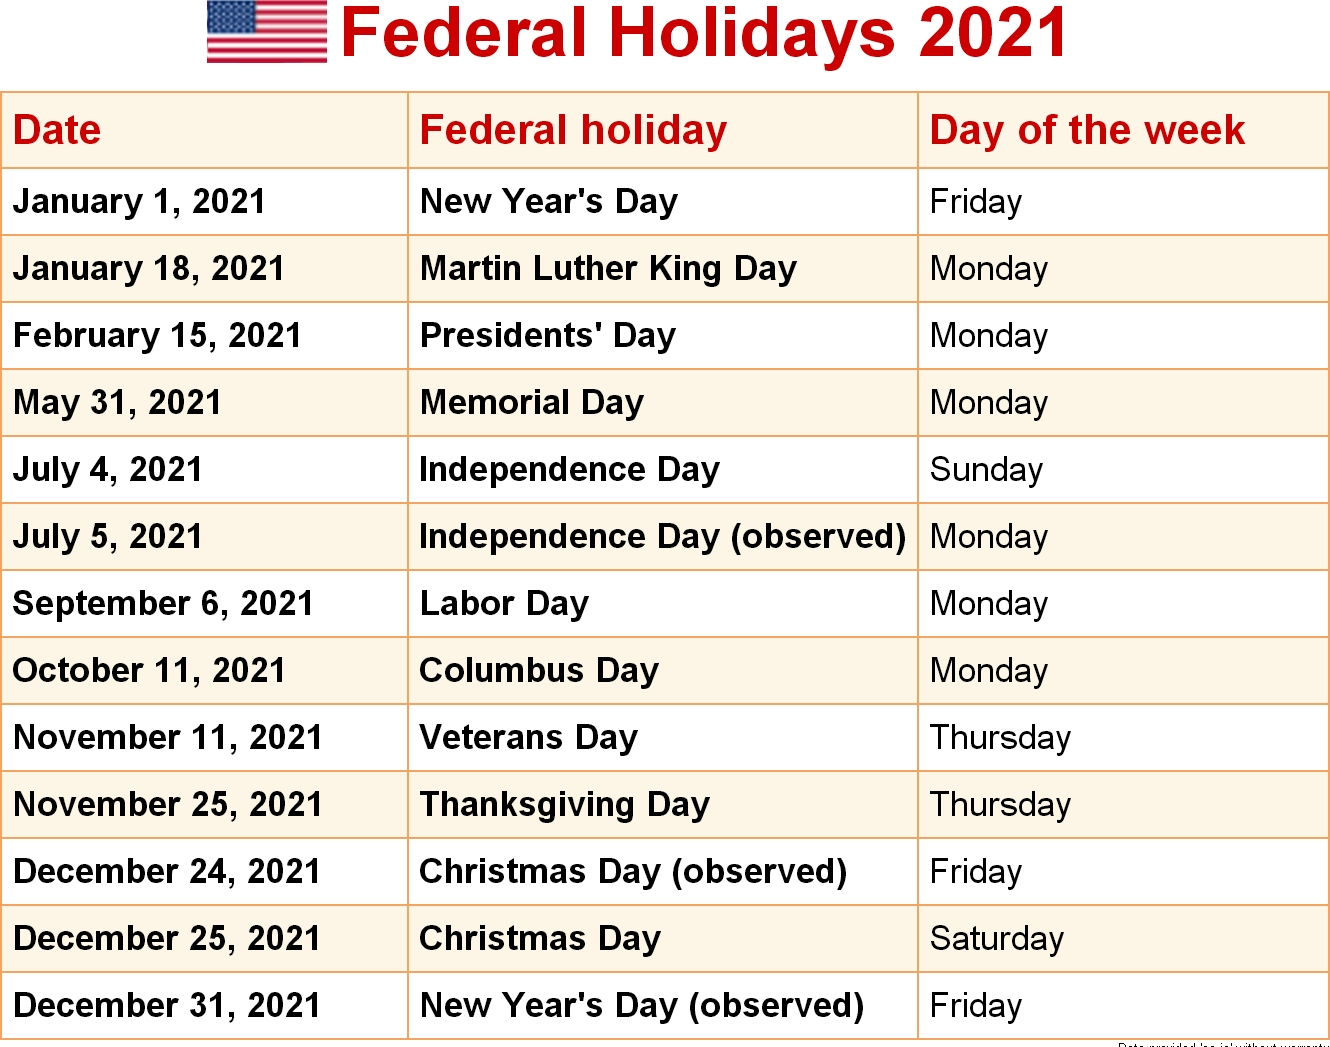 Ups Holiday Schedule 2021 | Ups Holidays 2021